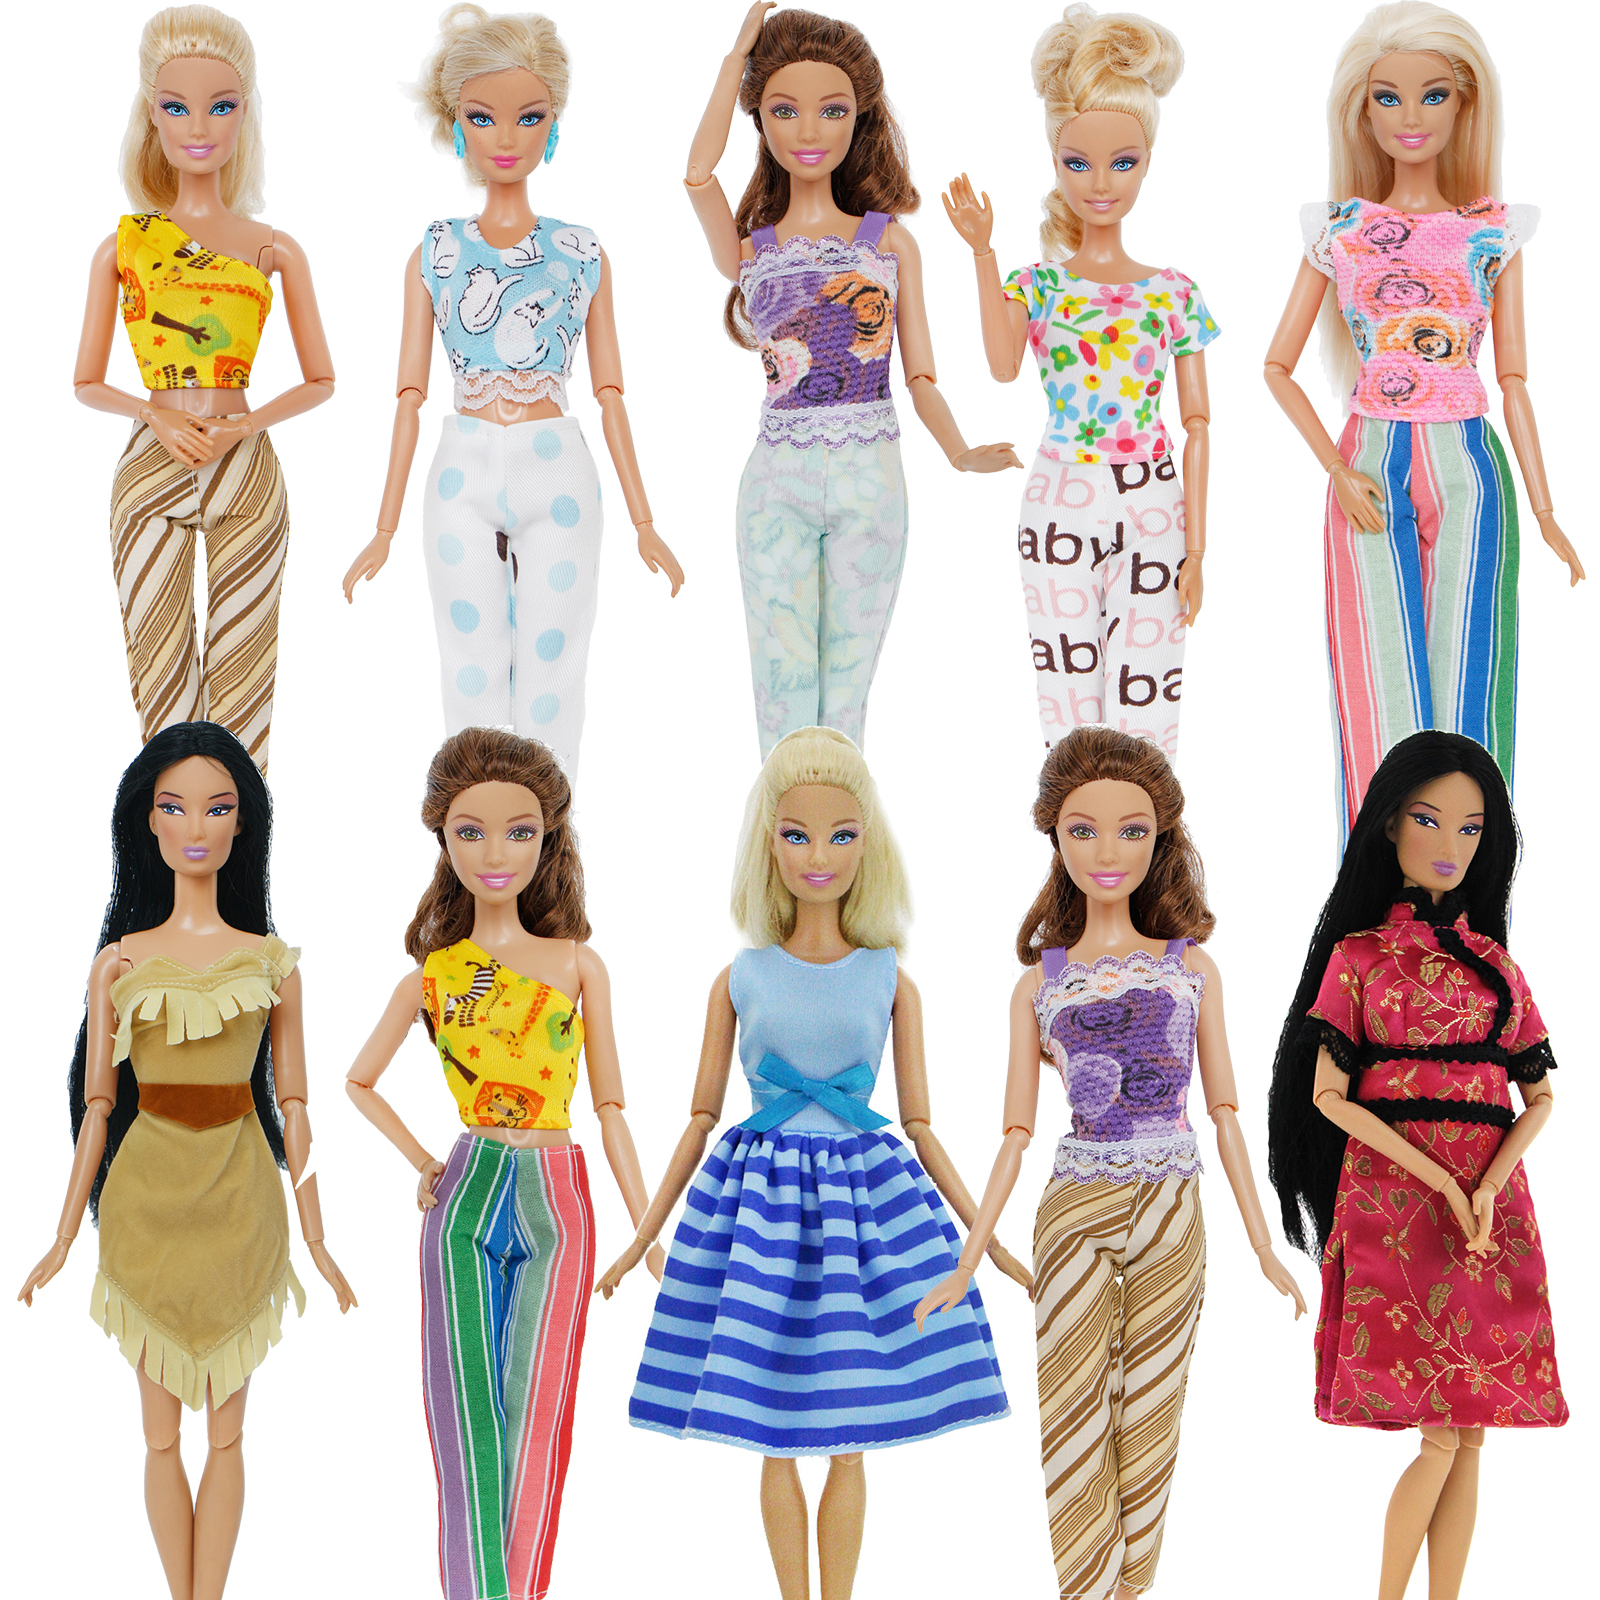 Fashion Mixed Style Outfits Colorful Wedding Party Dress T-shirt Trousers DIY Accessories Clothes For Barbie Doll Baby Toy